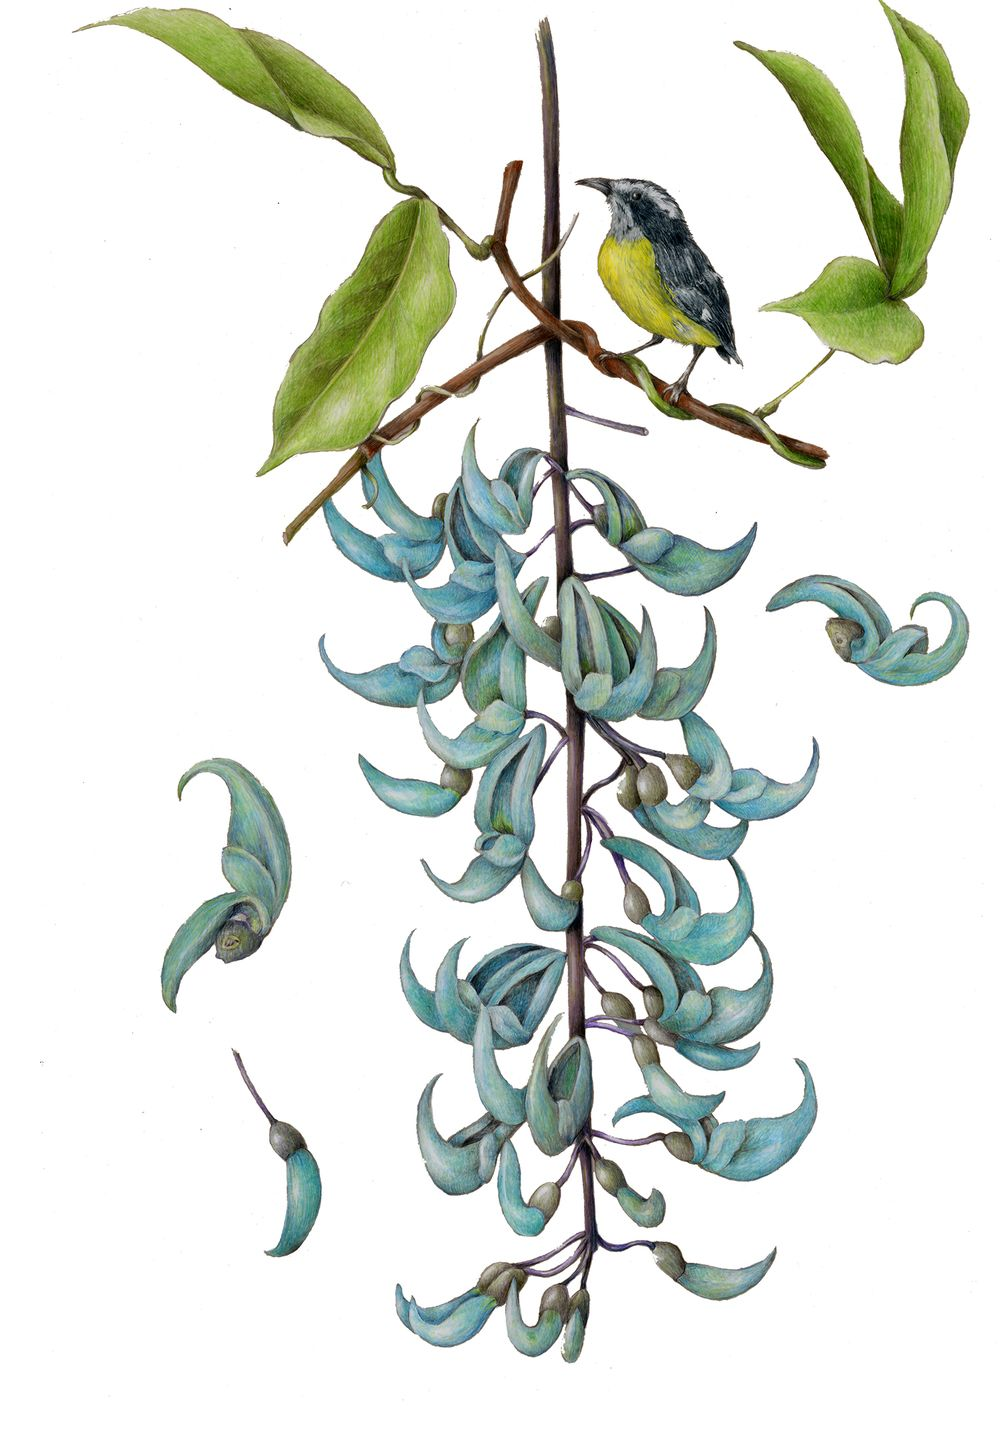 Jade Vine. From the collection of botanical illustrations ...  Jade Vine. From...